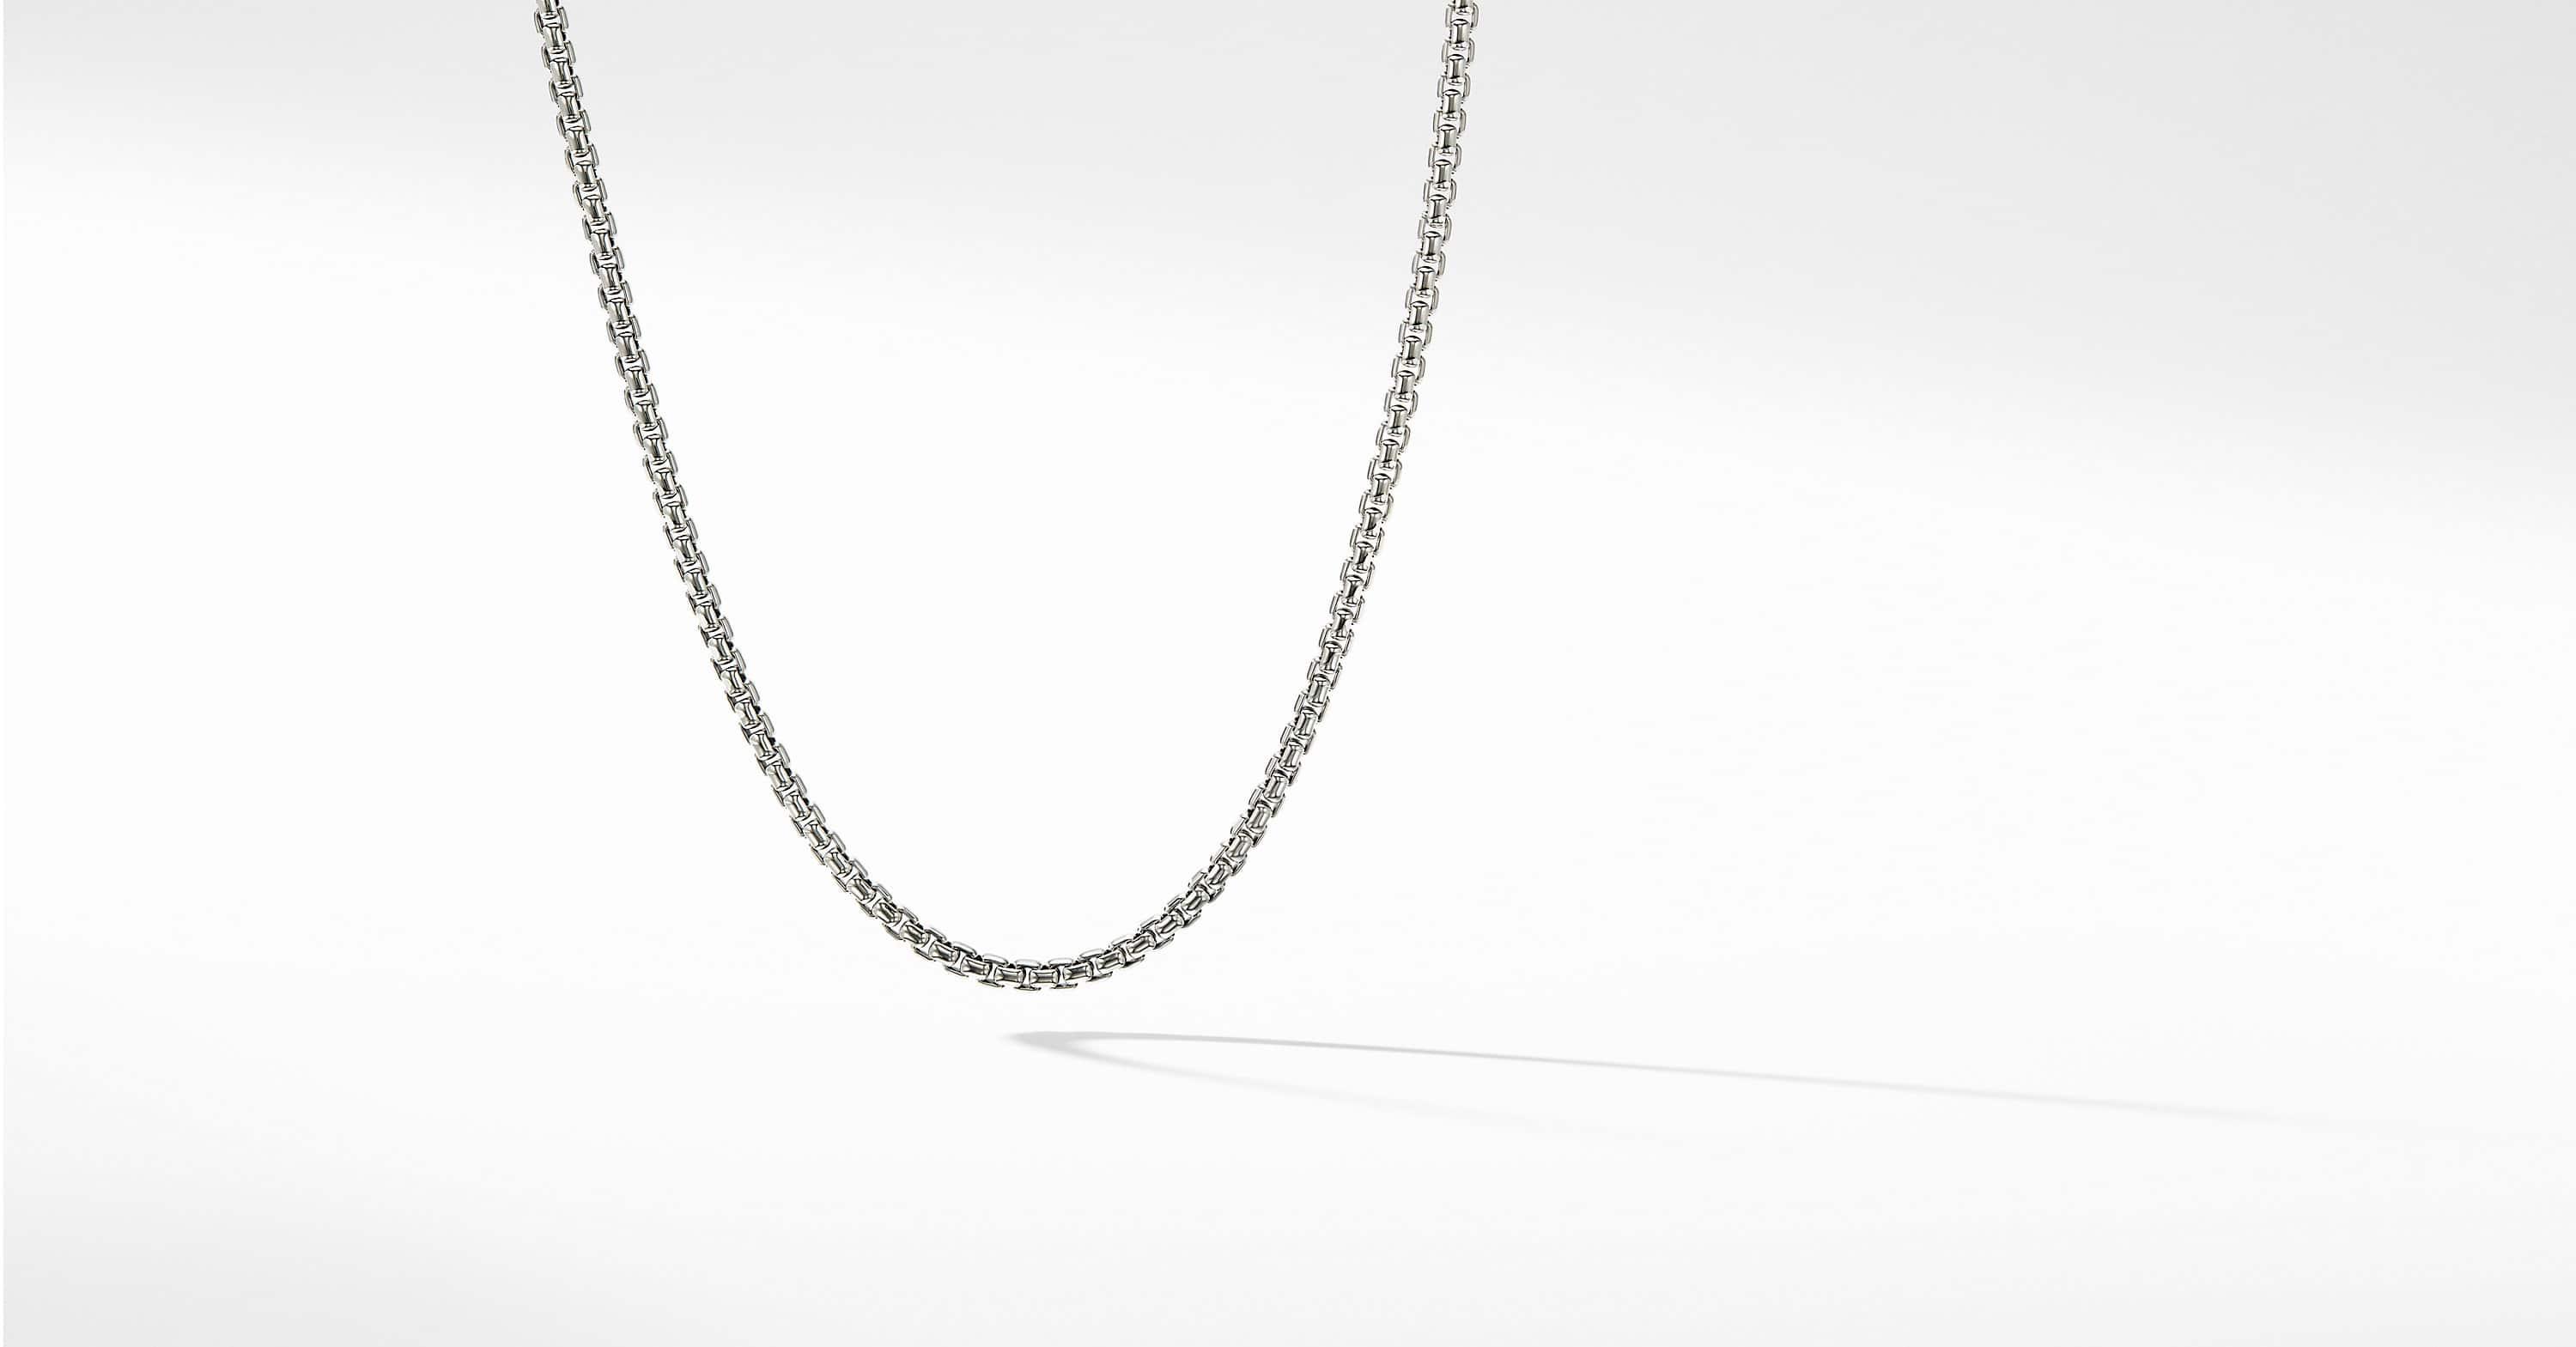 Medium Box Chain Necklace with an Accent of 14K Gold, 3.6mm